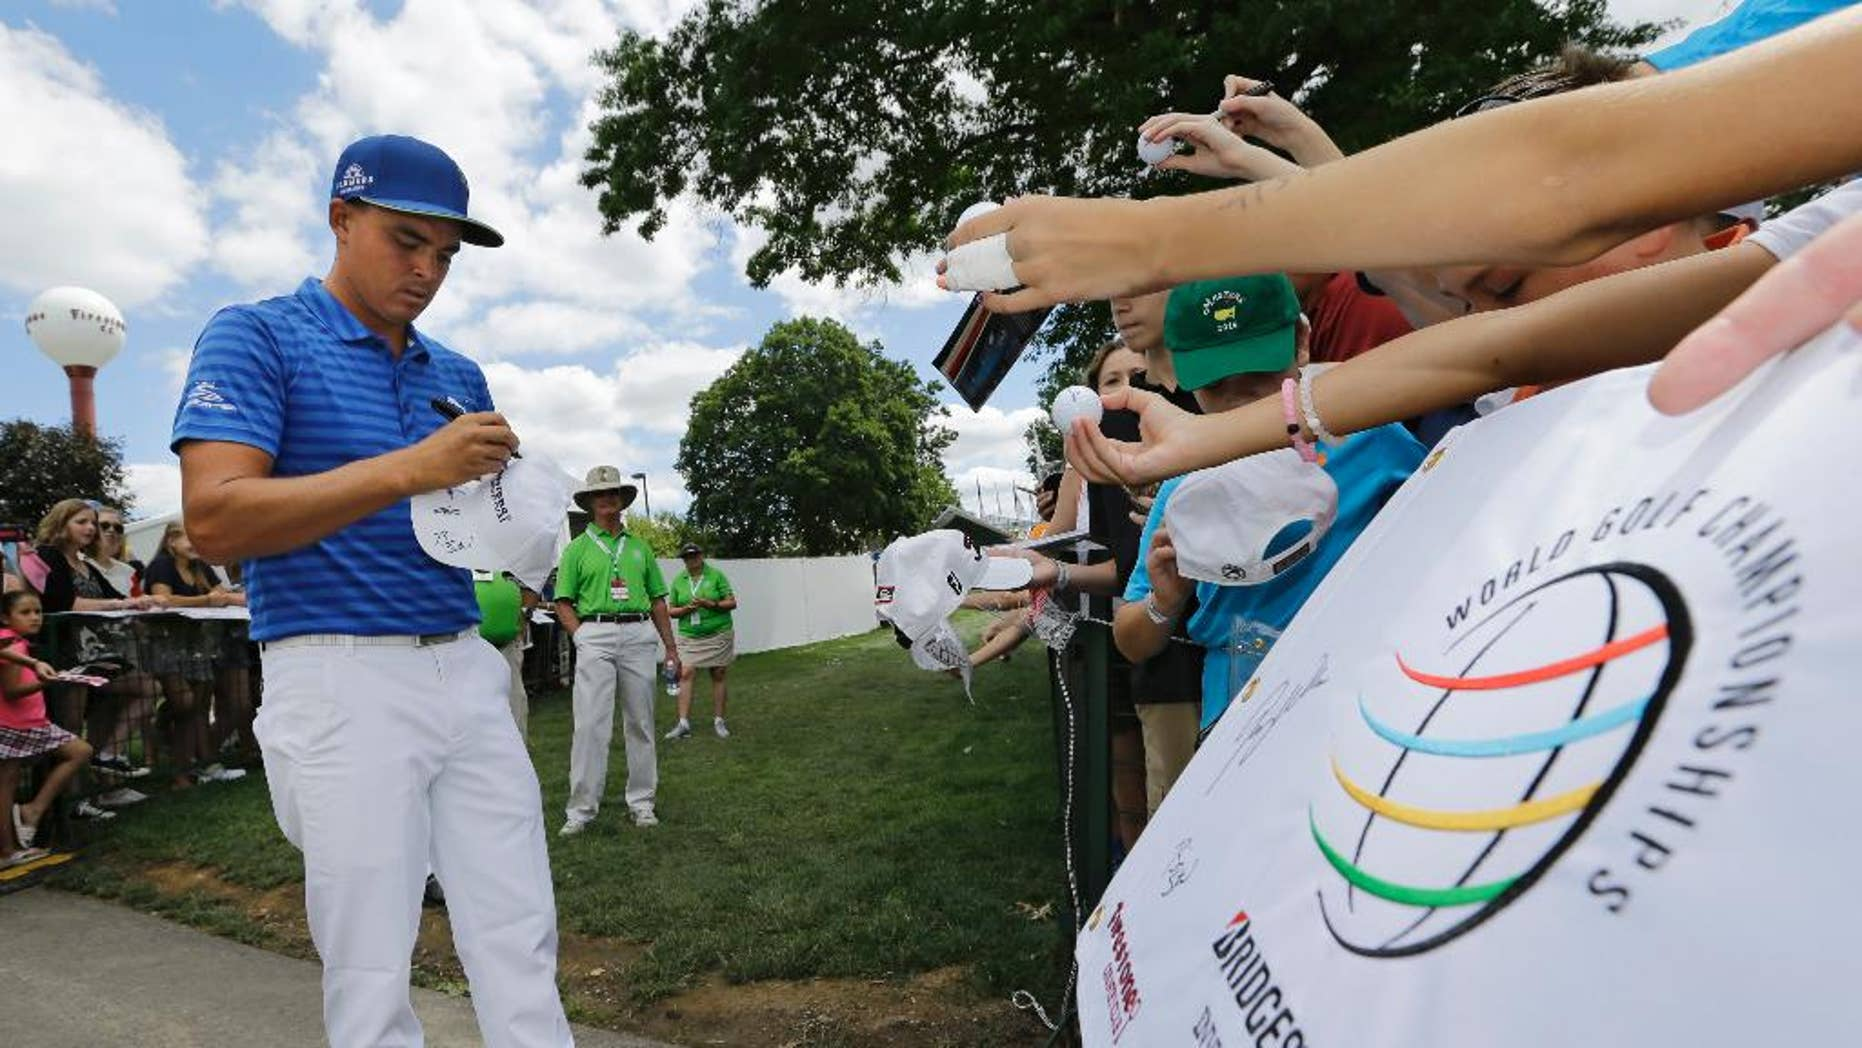 Rickie Fowler signs autographs during the practice round of the Bridgestone Invitational golf tournament at Firestone Country Club, Wednesday, June 29, 2016, in Akron, Ohio. (AP Photo/Tony Dejak)